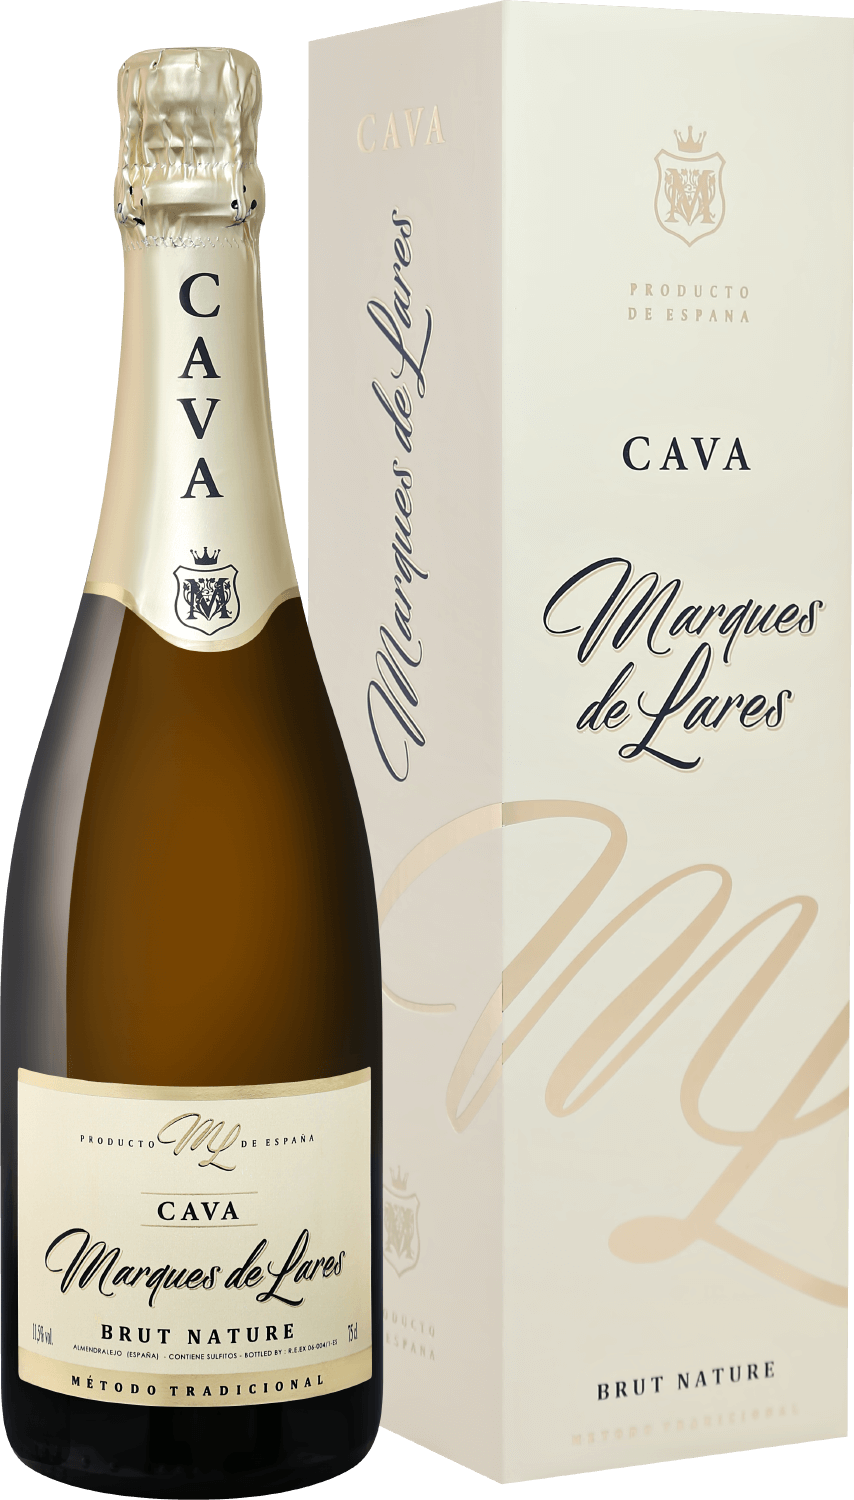 Marques de Lares, Brut Nature, Cava, gift box